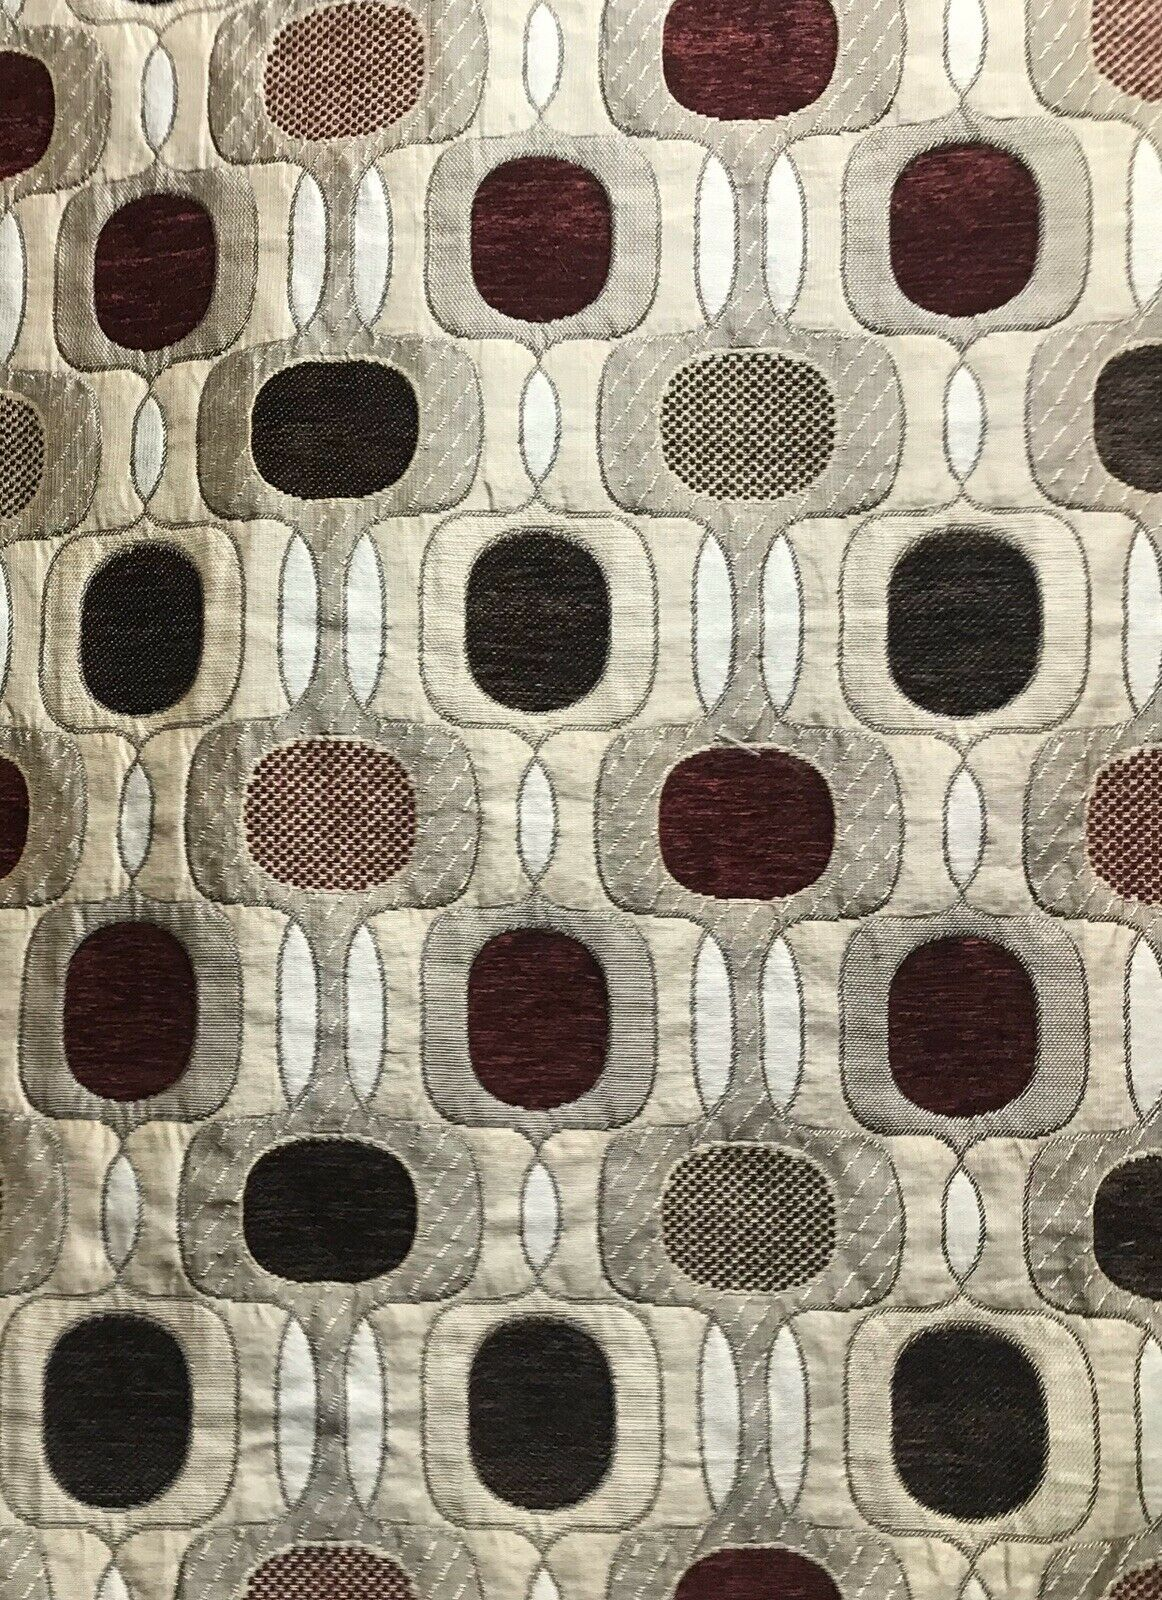 Designer Burnout Chenille Upholstery Geometric Fabric - Taupe Black Burgundy